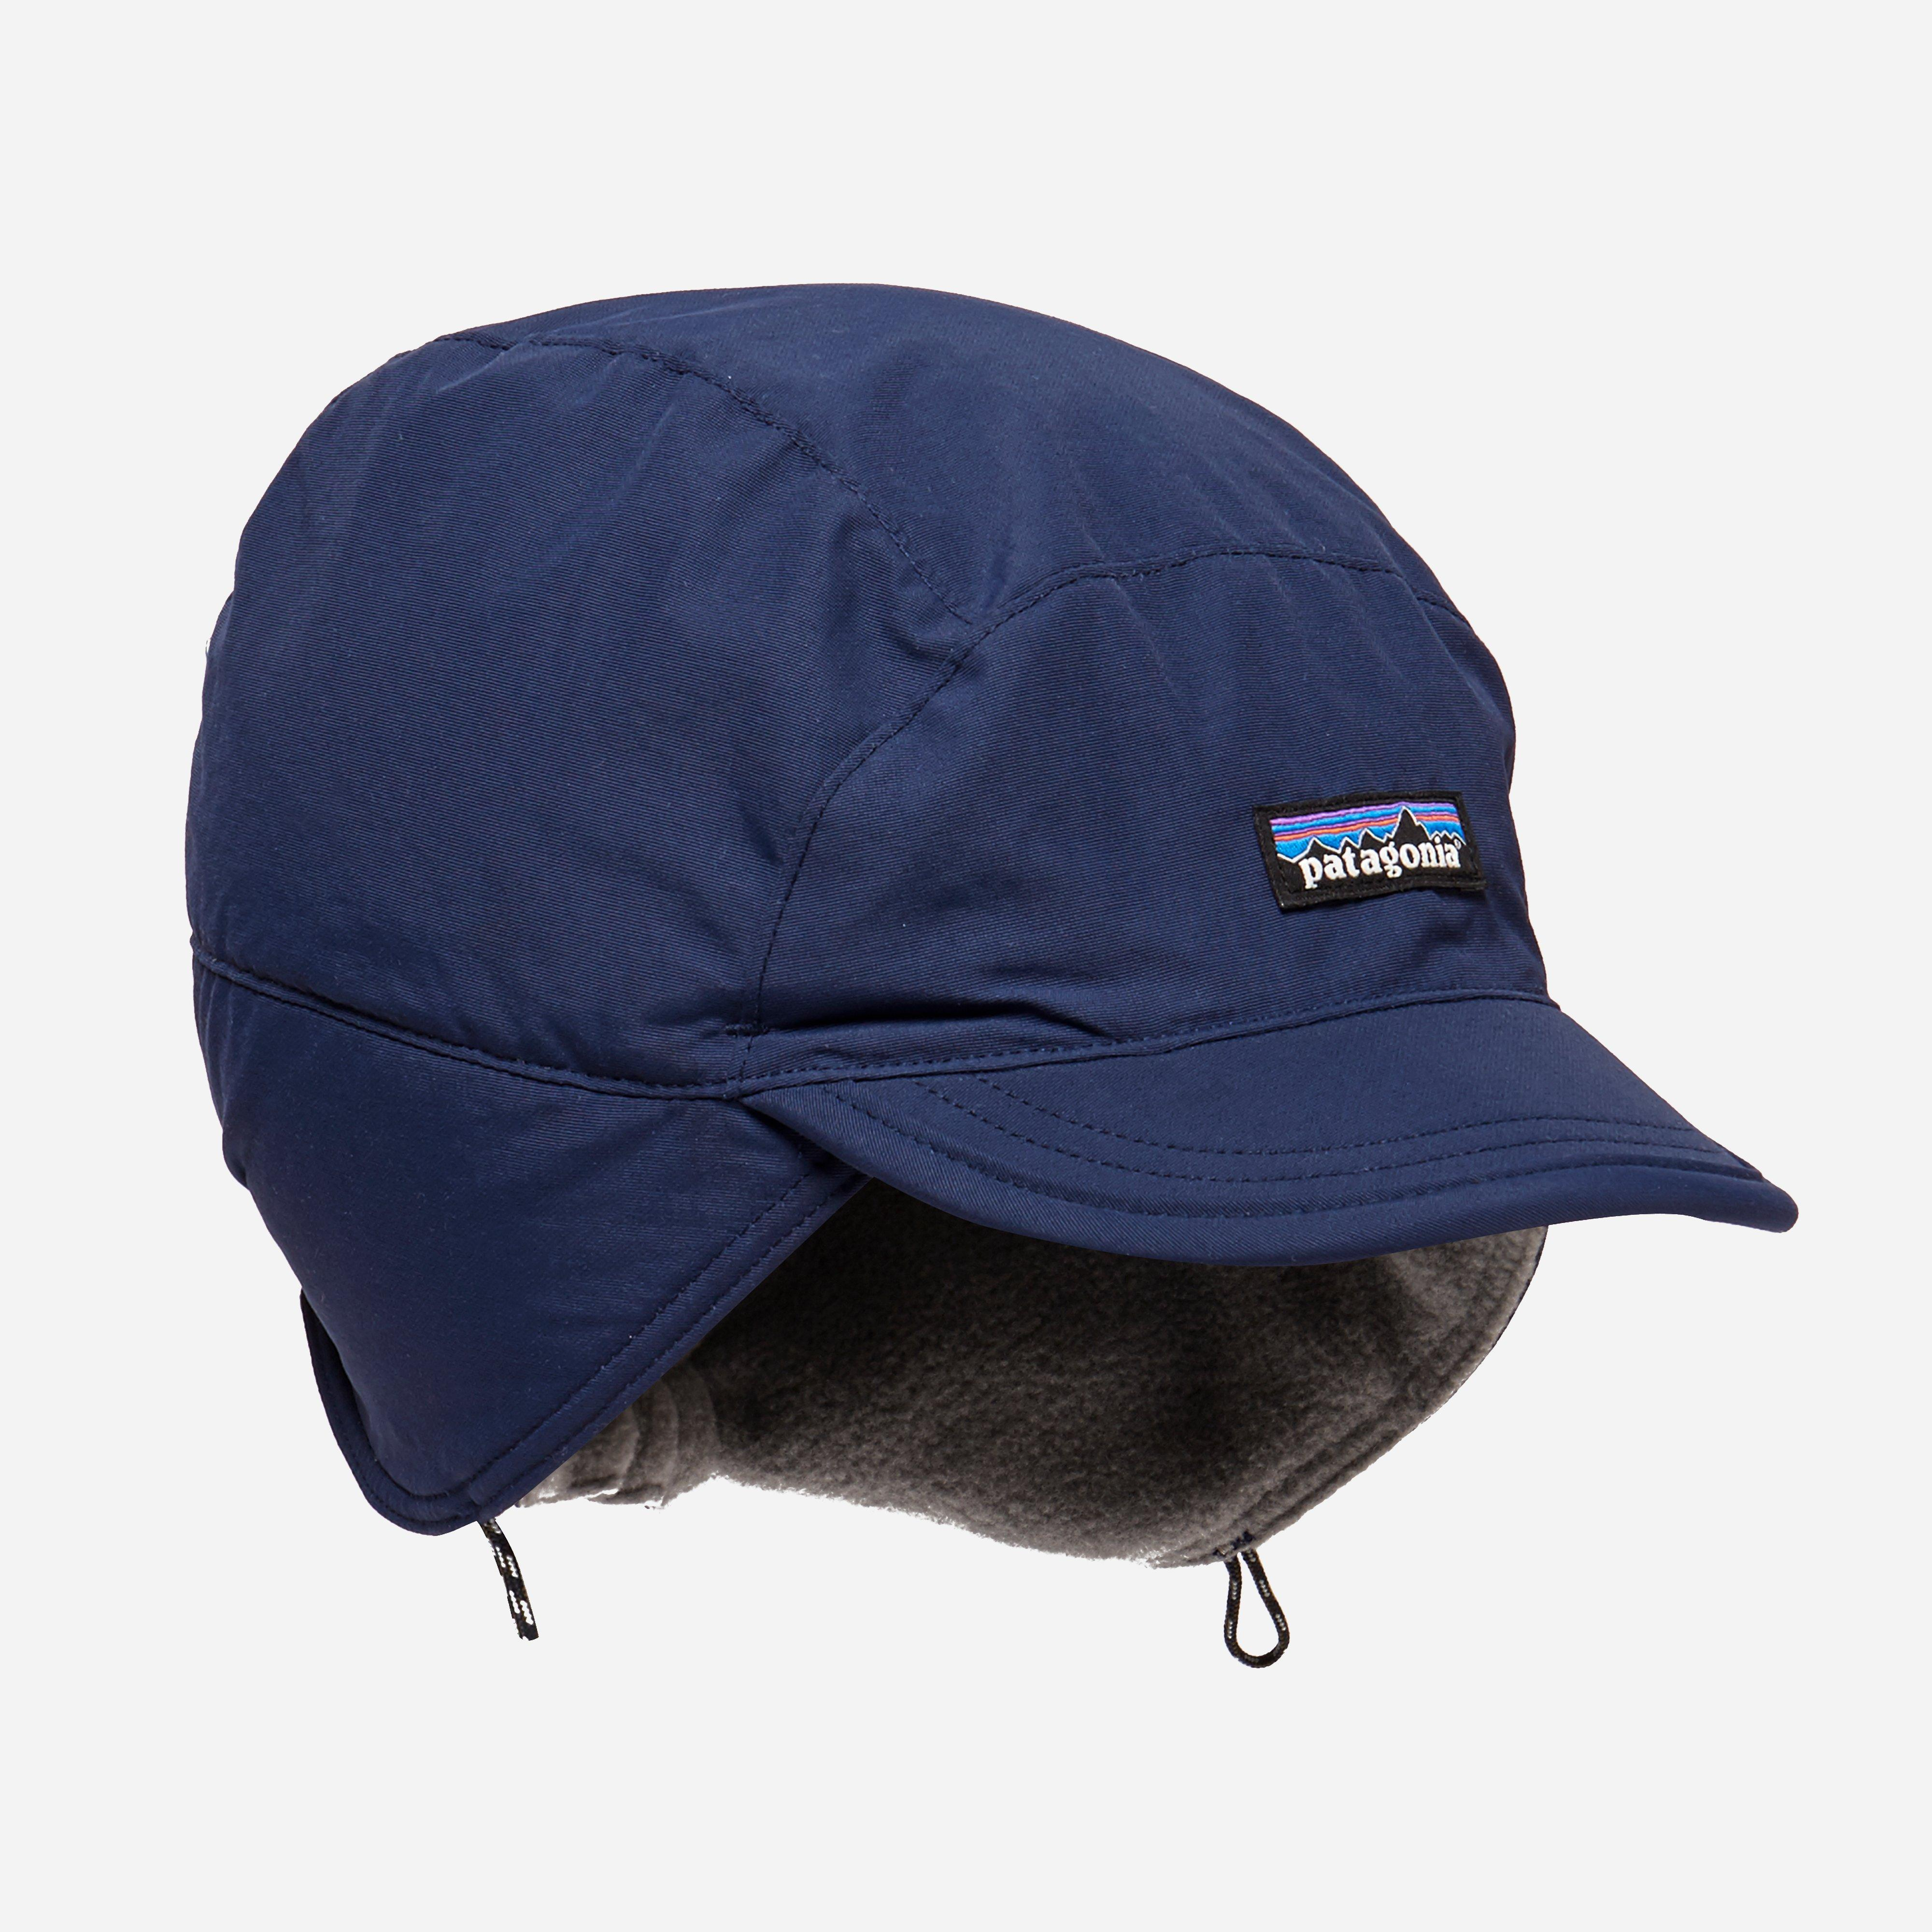 Patagonia Shelled Synch Duckbill Cap Navy